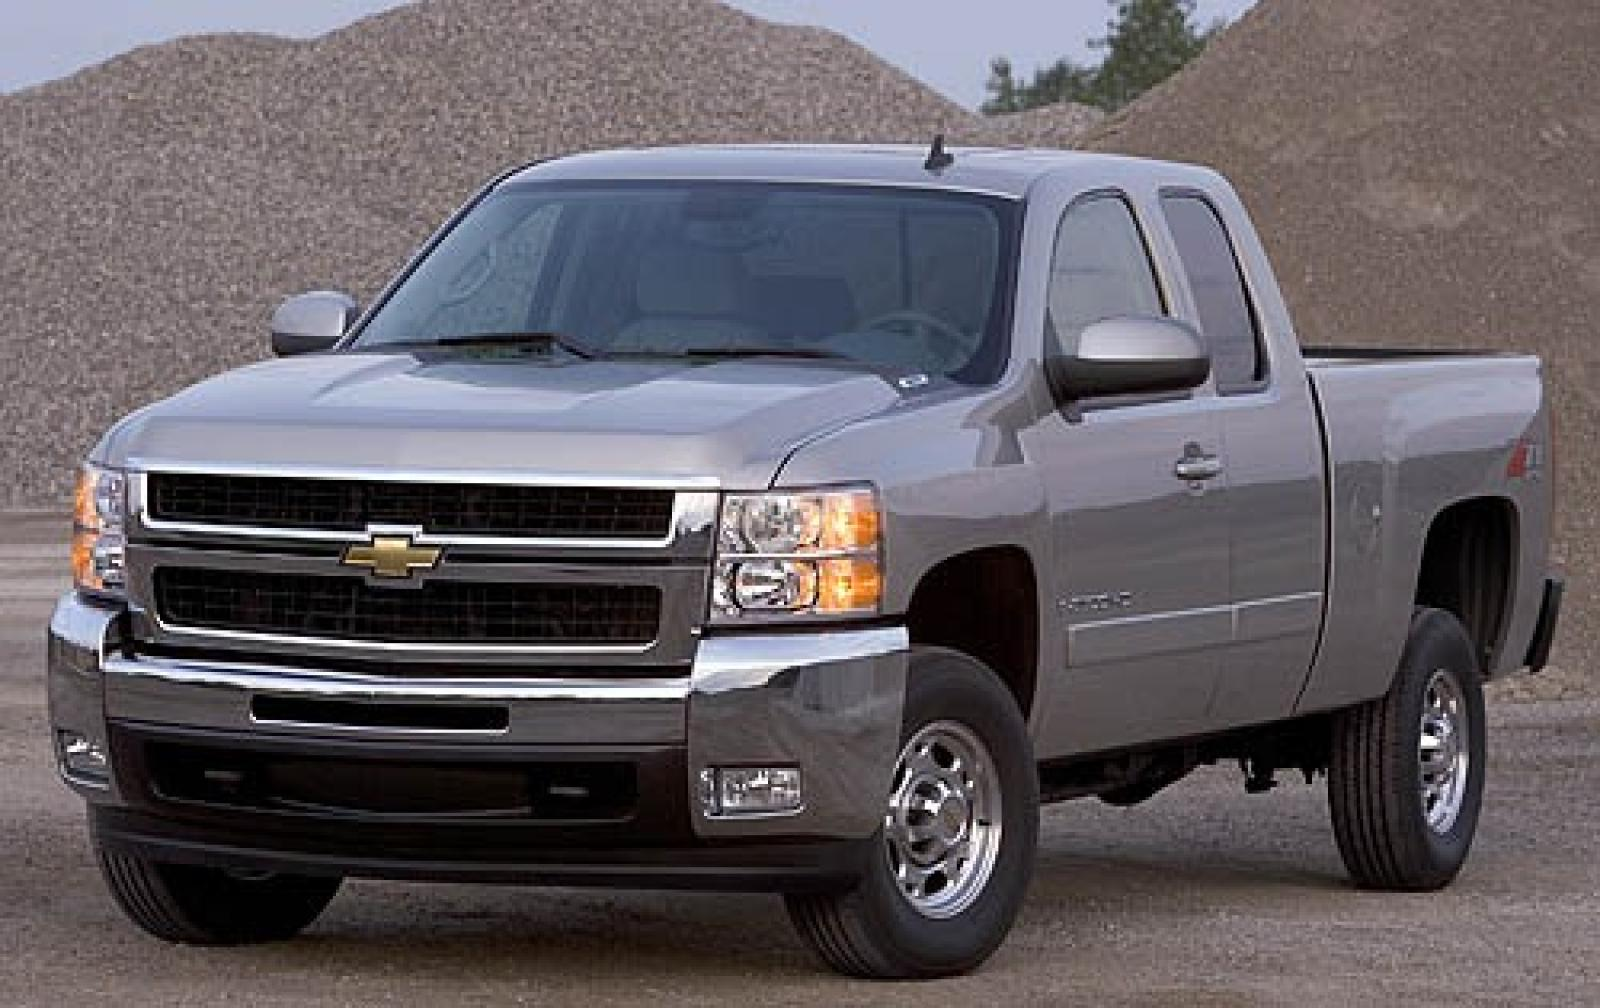 2007 chevrolet silverado 2500hd information and photos zombiedrive. Black Bedroom Furniture Sets. Home Design Ideas